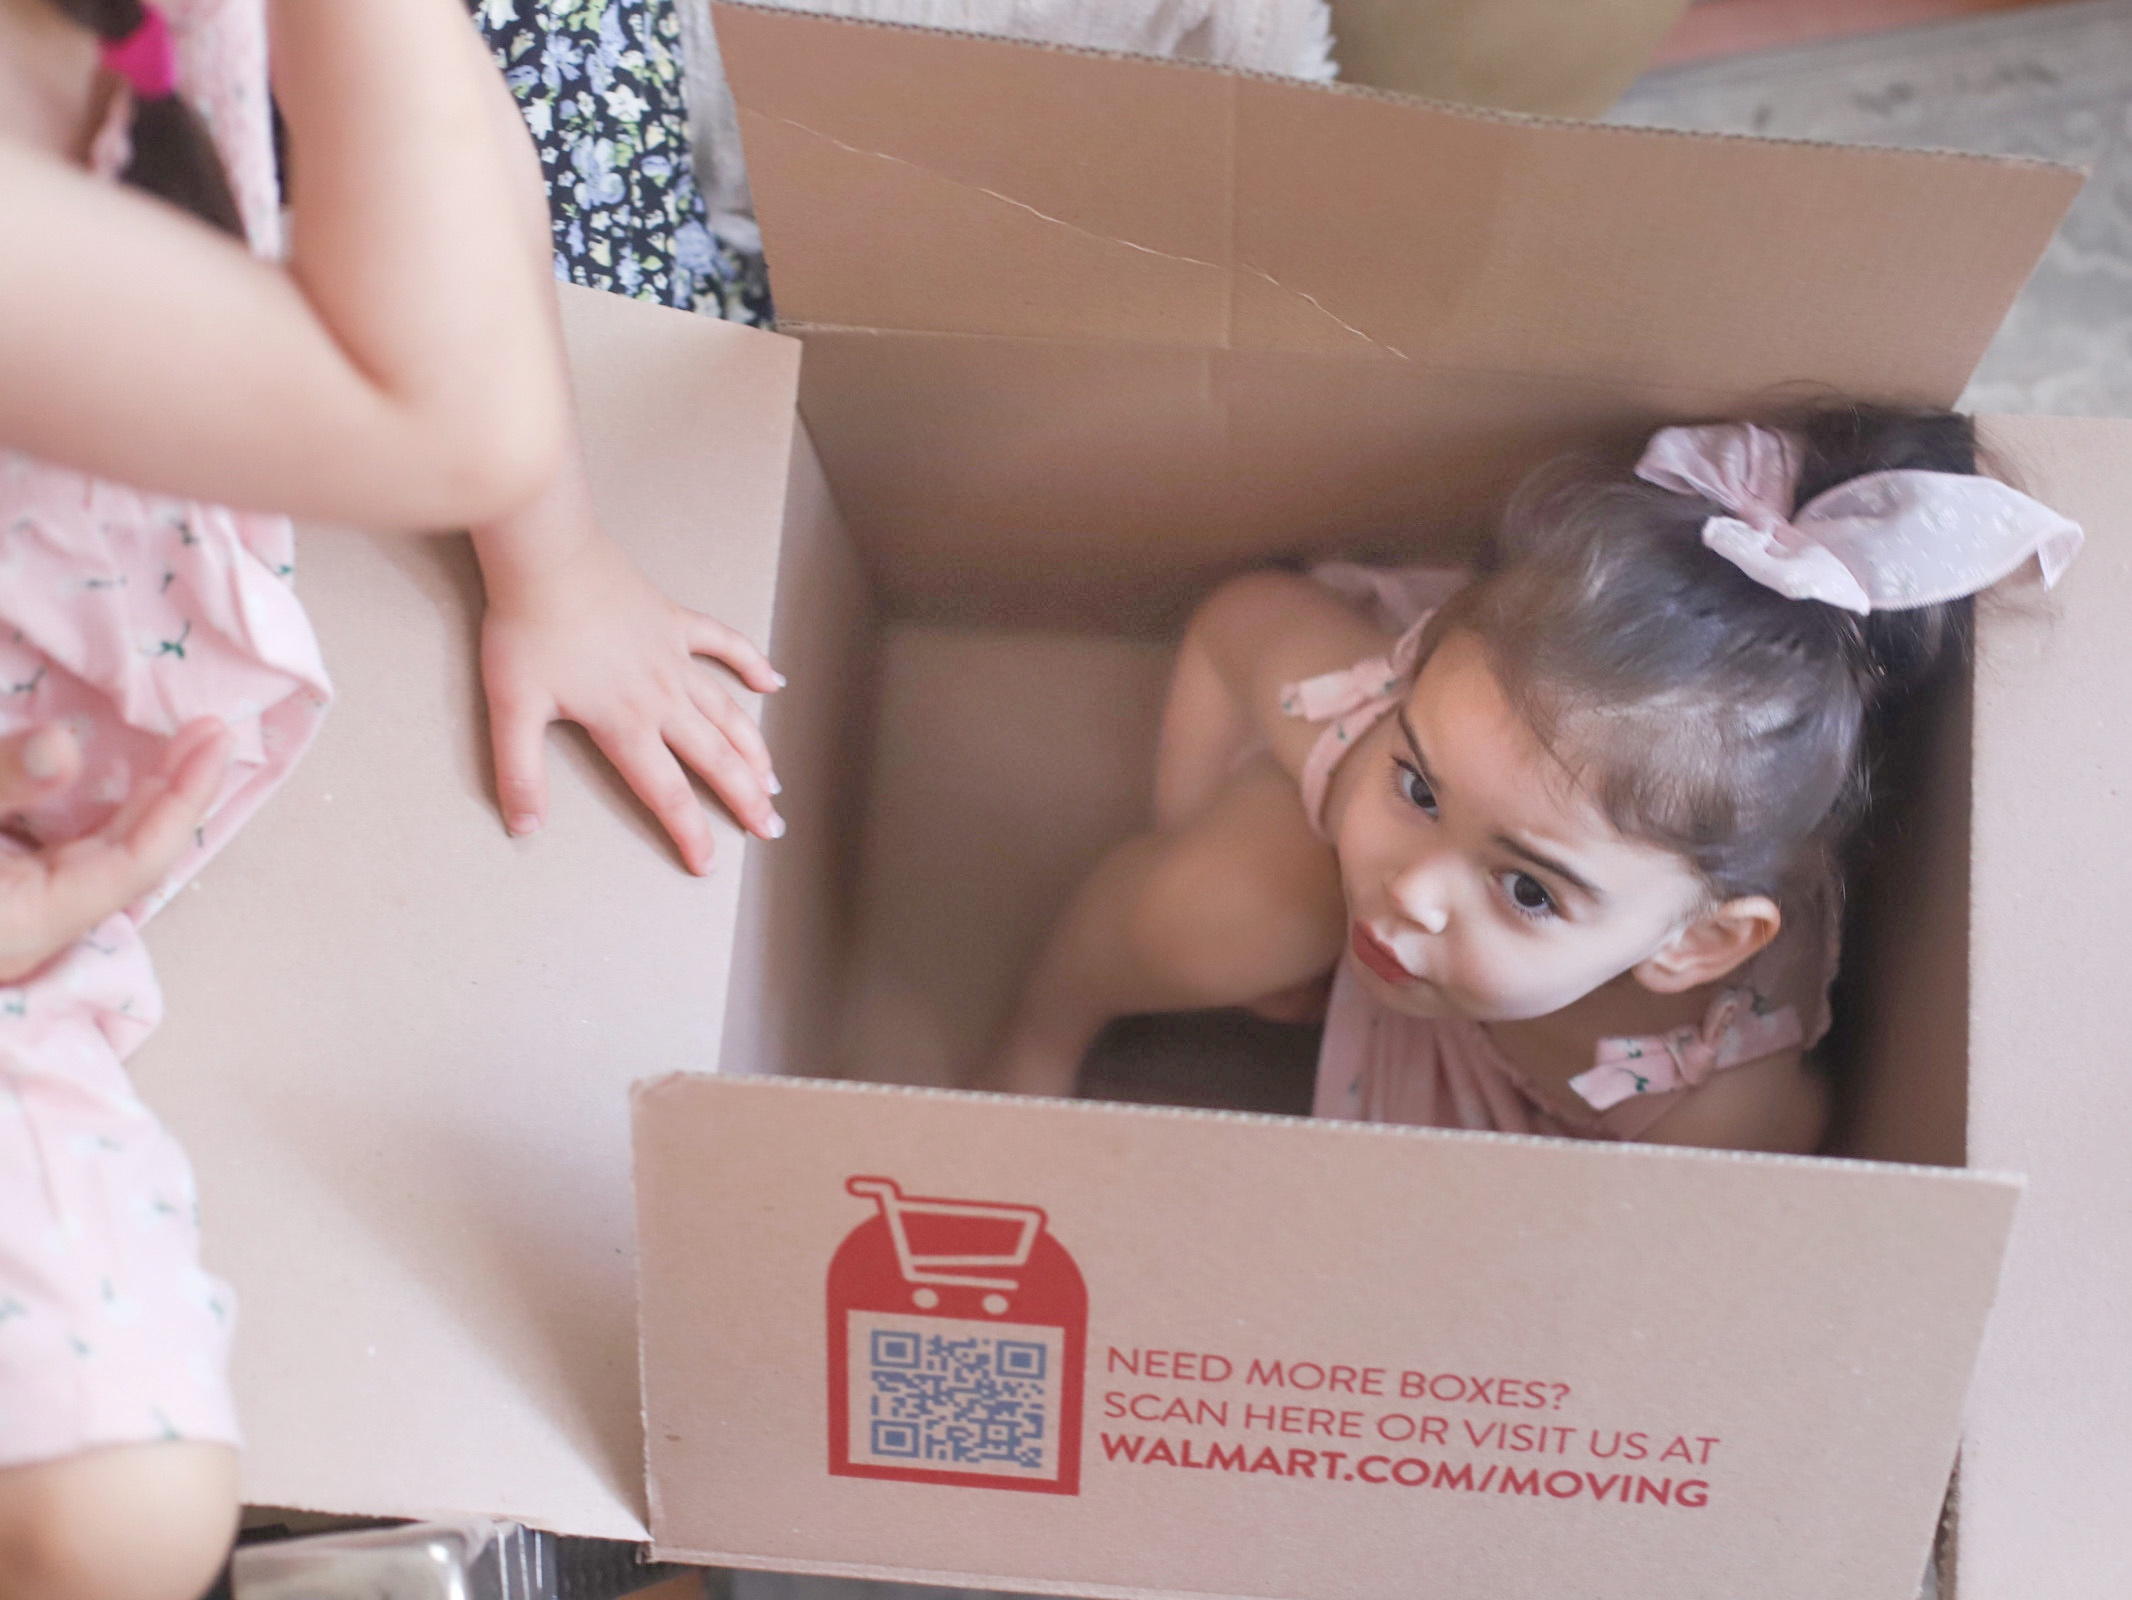 a child inside sitting inside a box for We Bought a House in Boston post